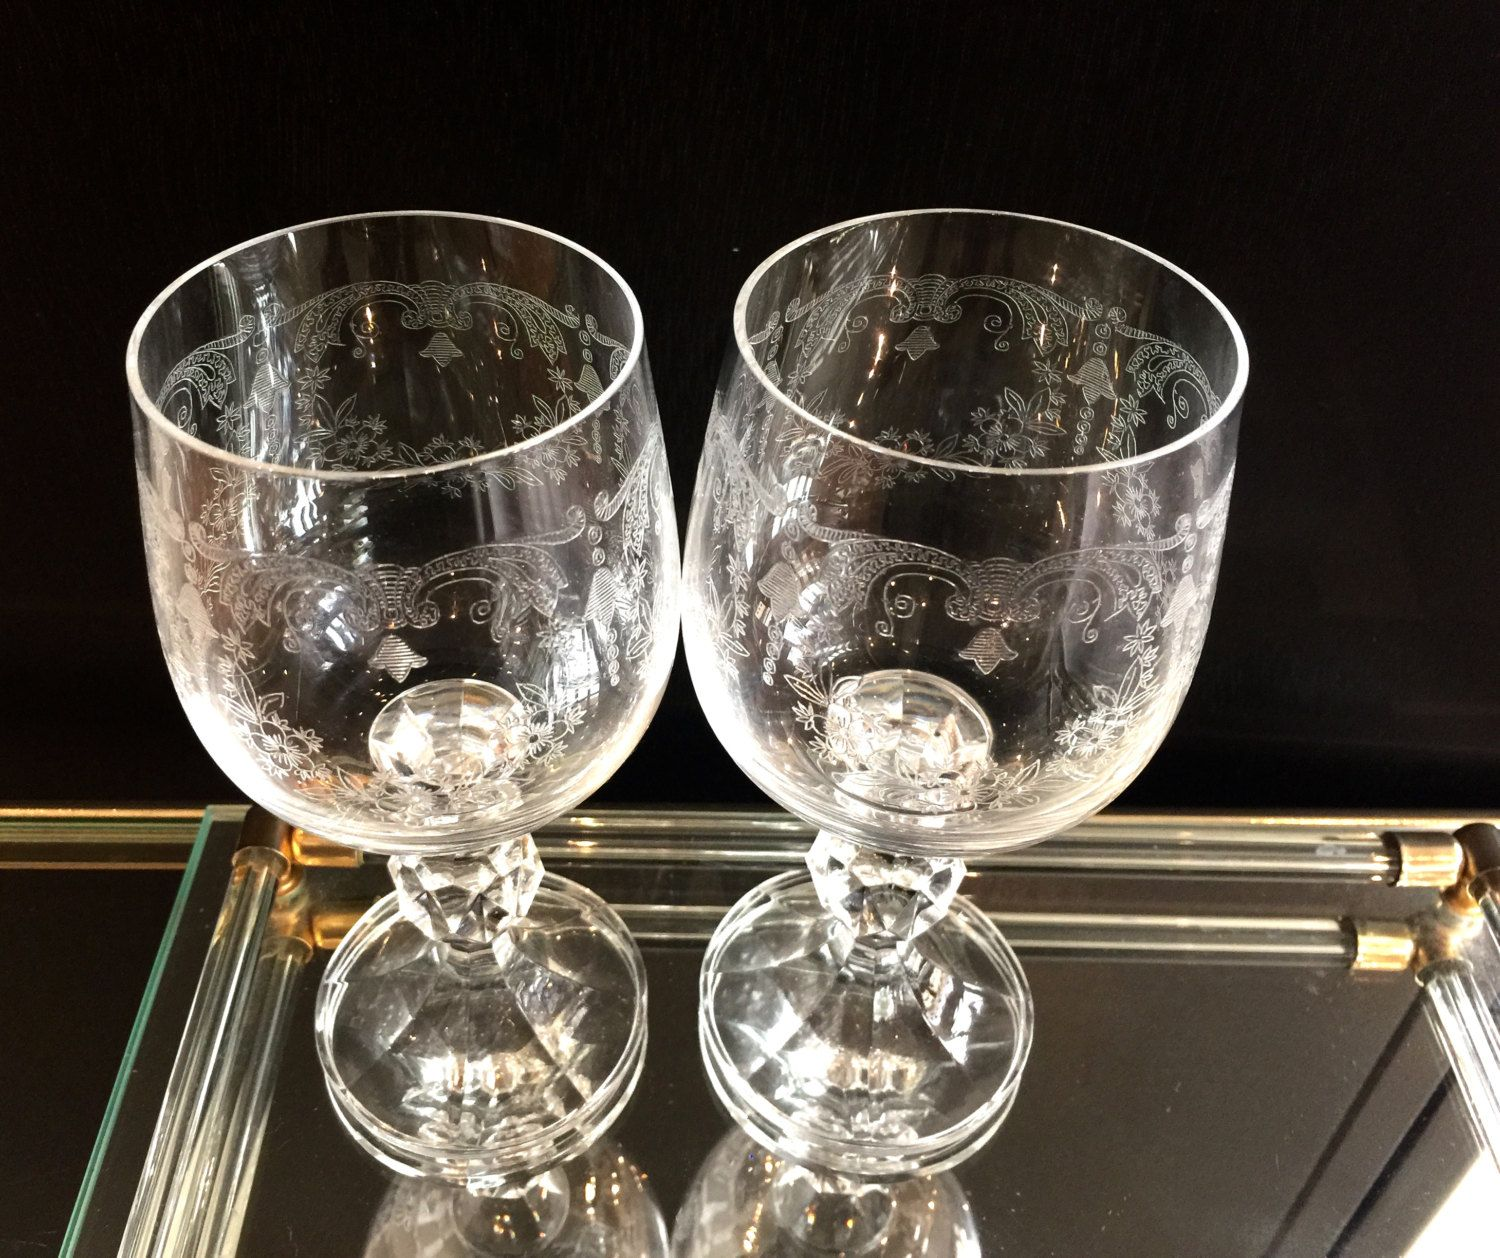 Small Stem Wine Glasses Vintage Bohemia Crystal Cascade Bell Etched Crystal